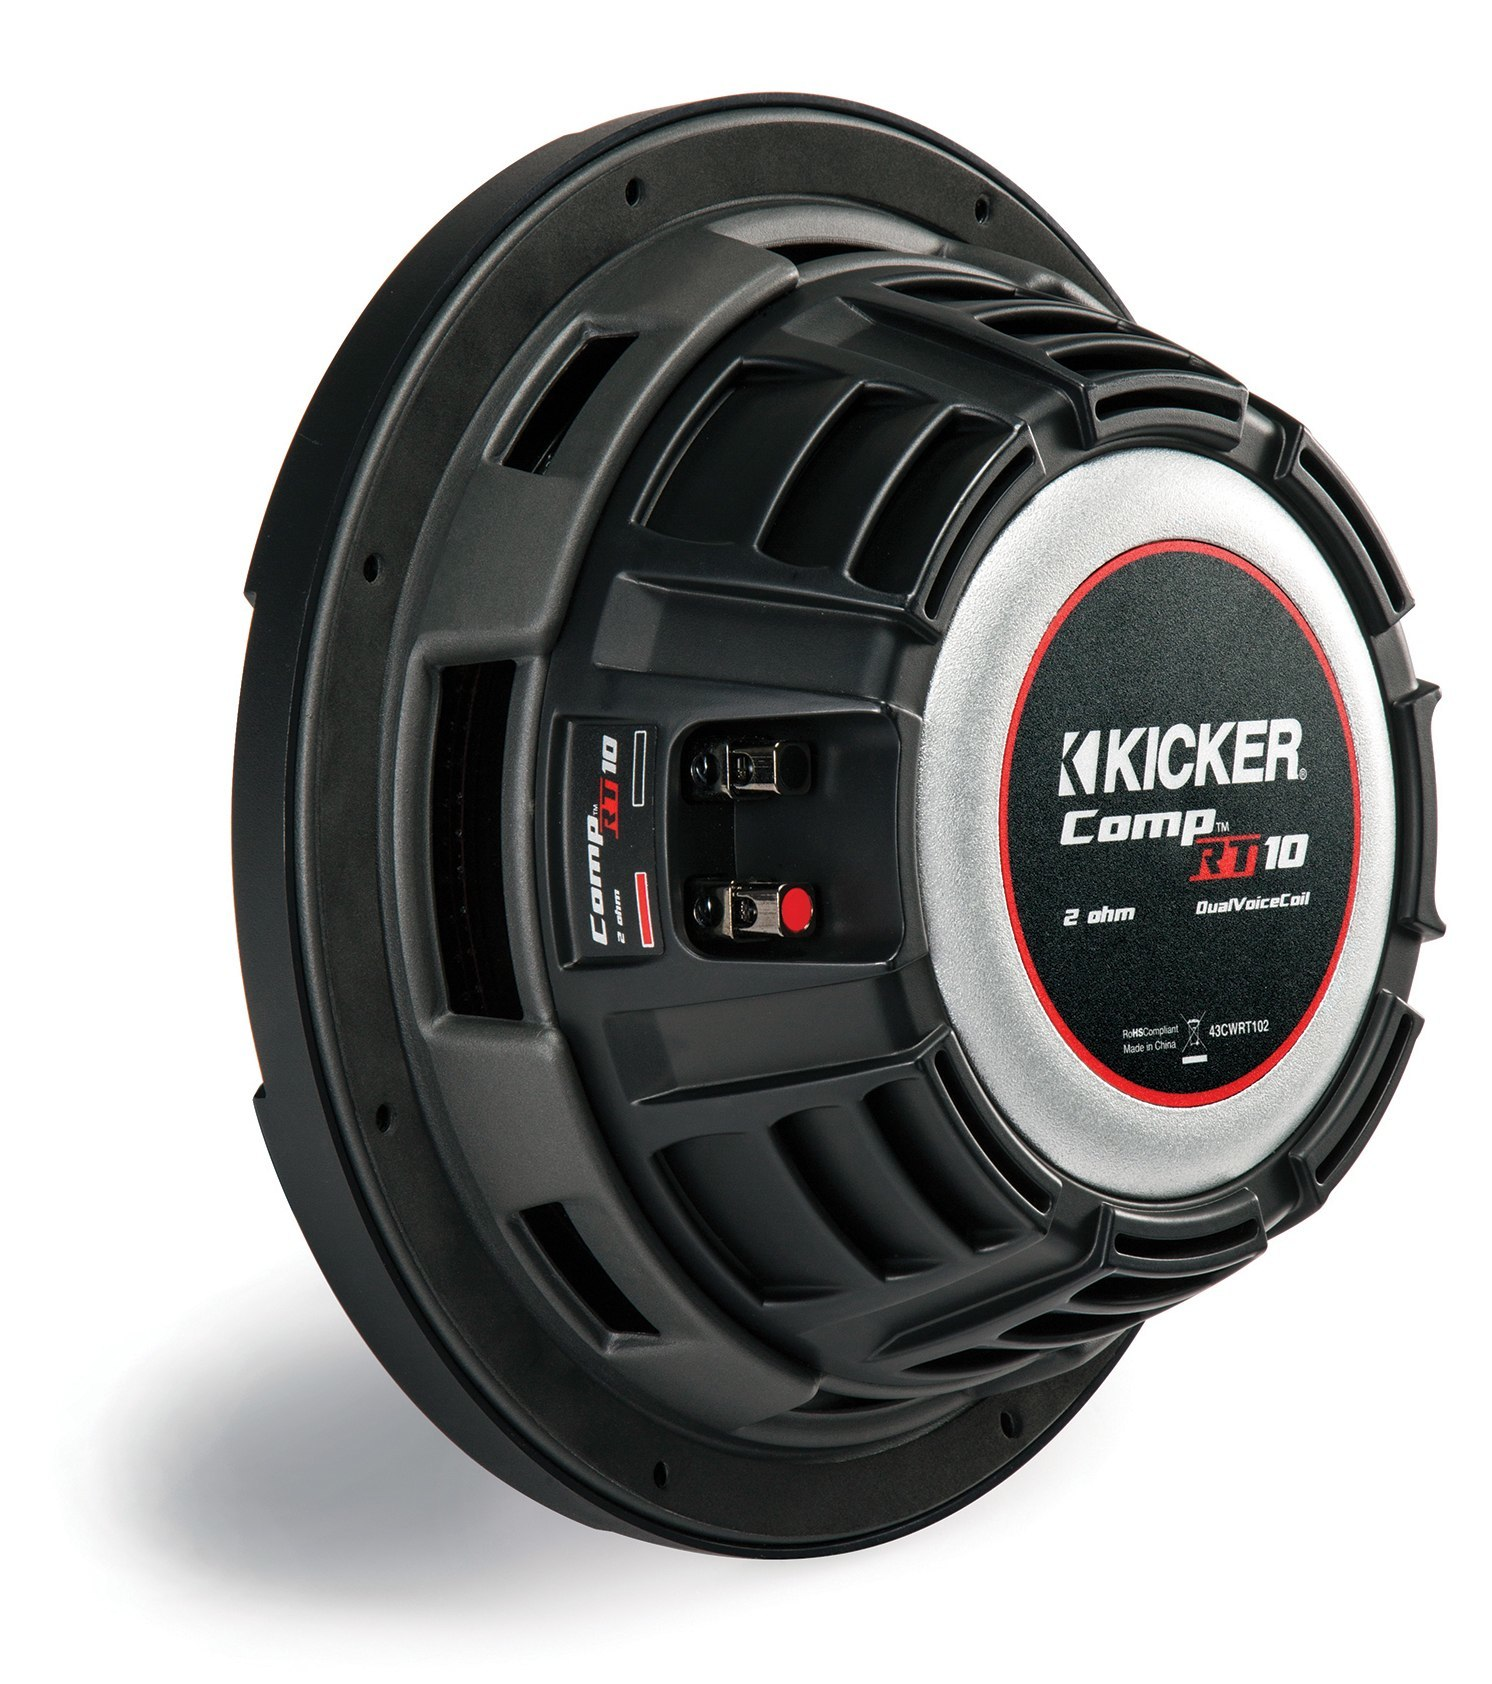 kicker subwoofer flach cwrt101 43 2x 1ohm 800w 25cm. Black Bedroom Furniture Sets. Home Design Ideas